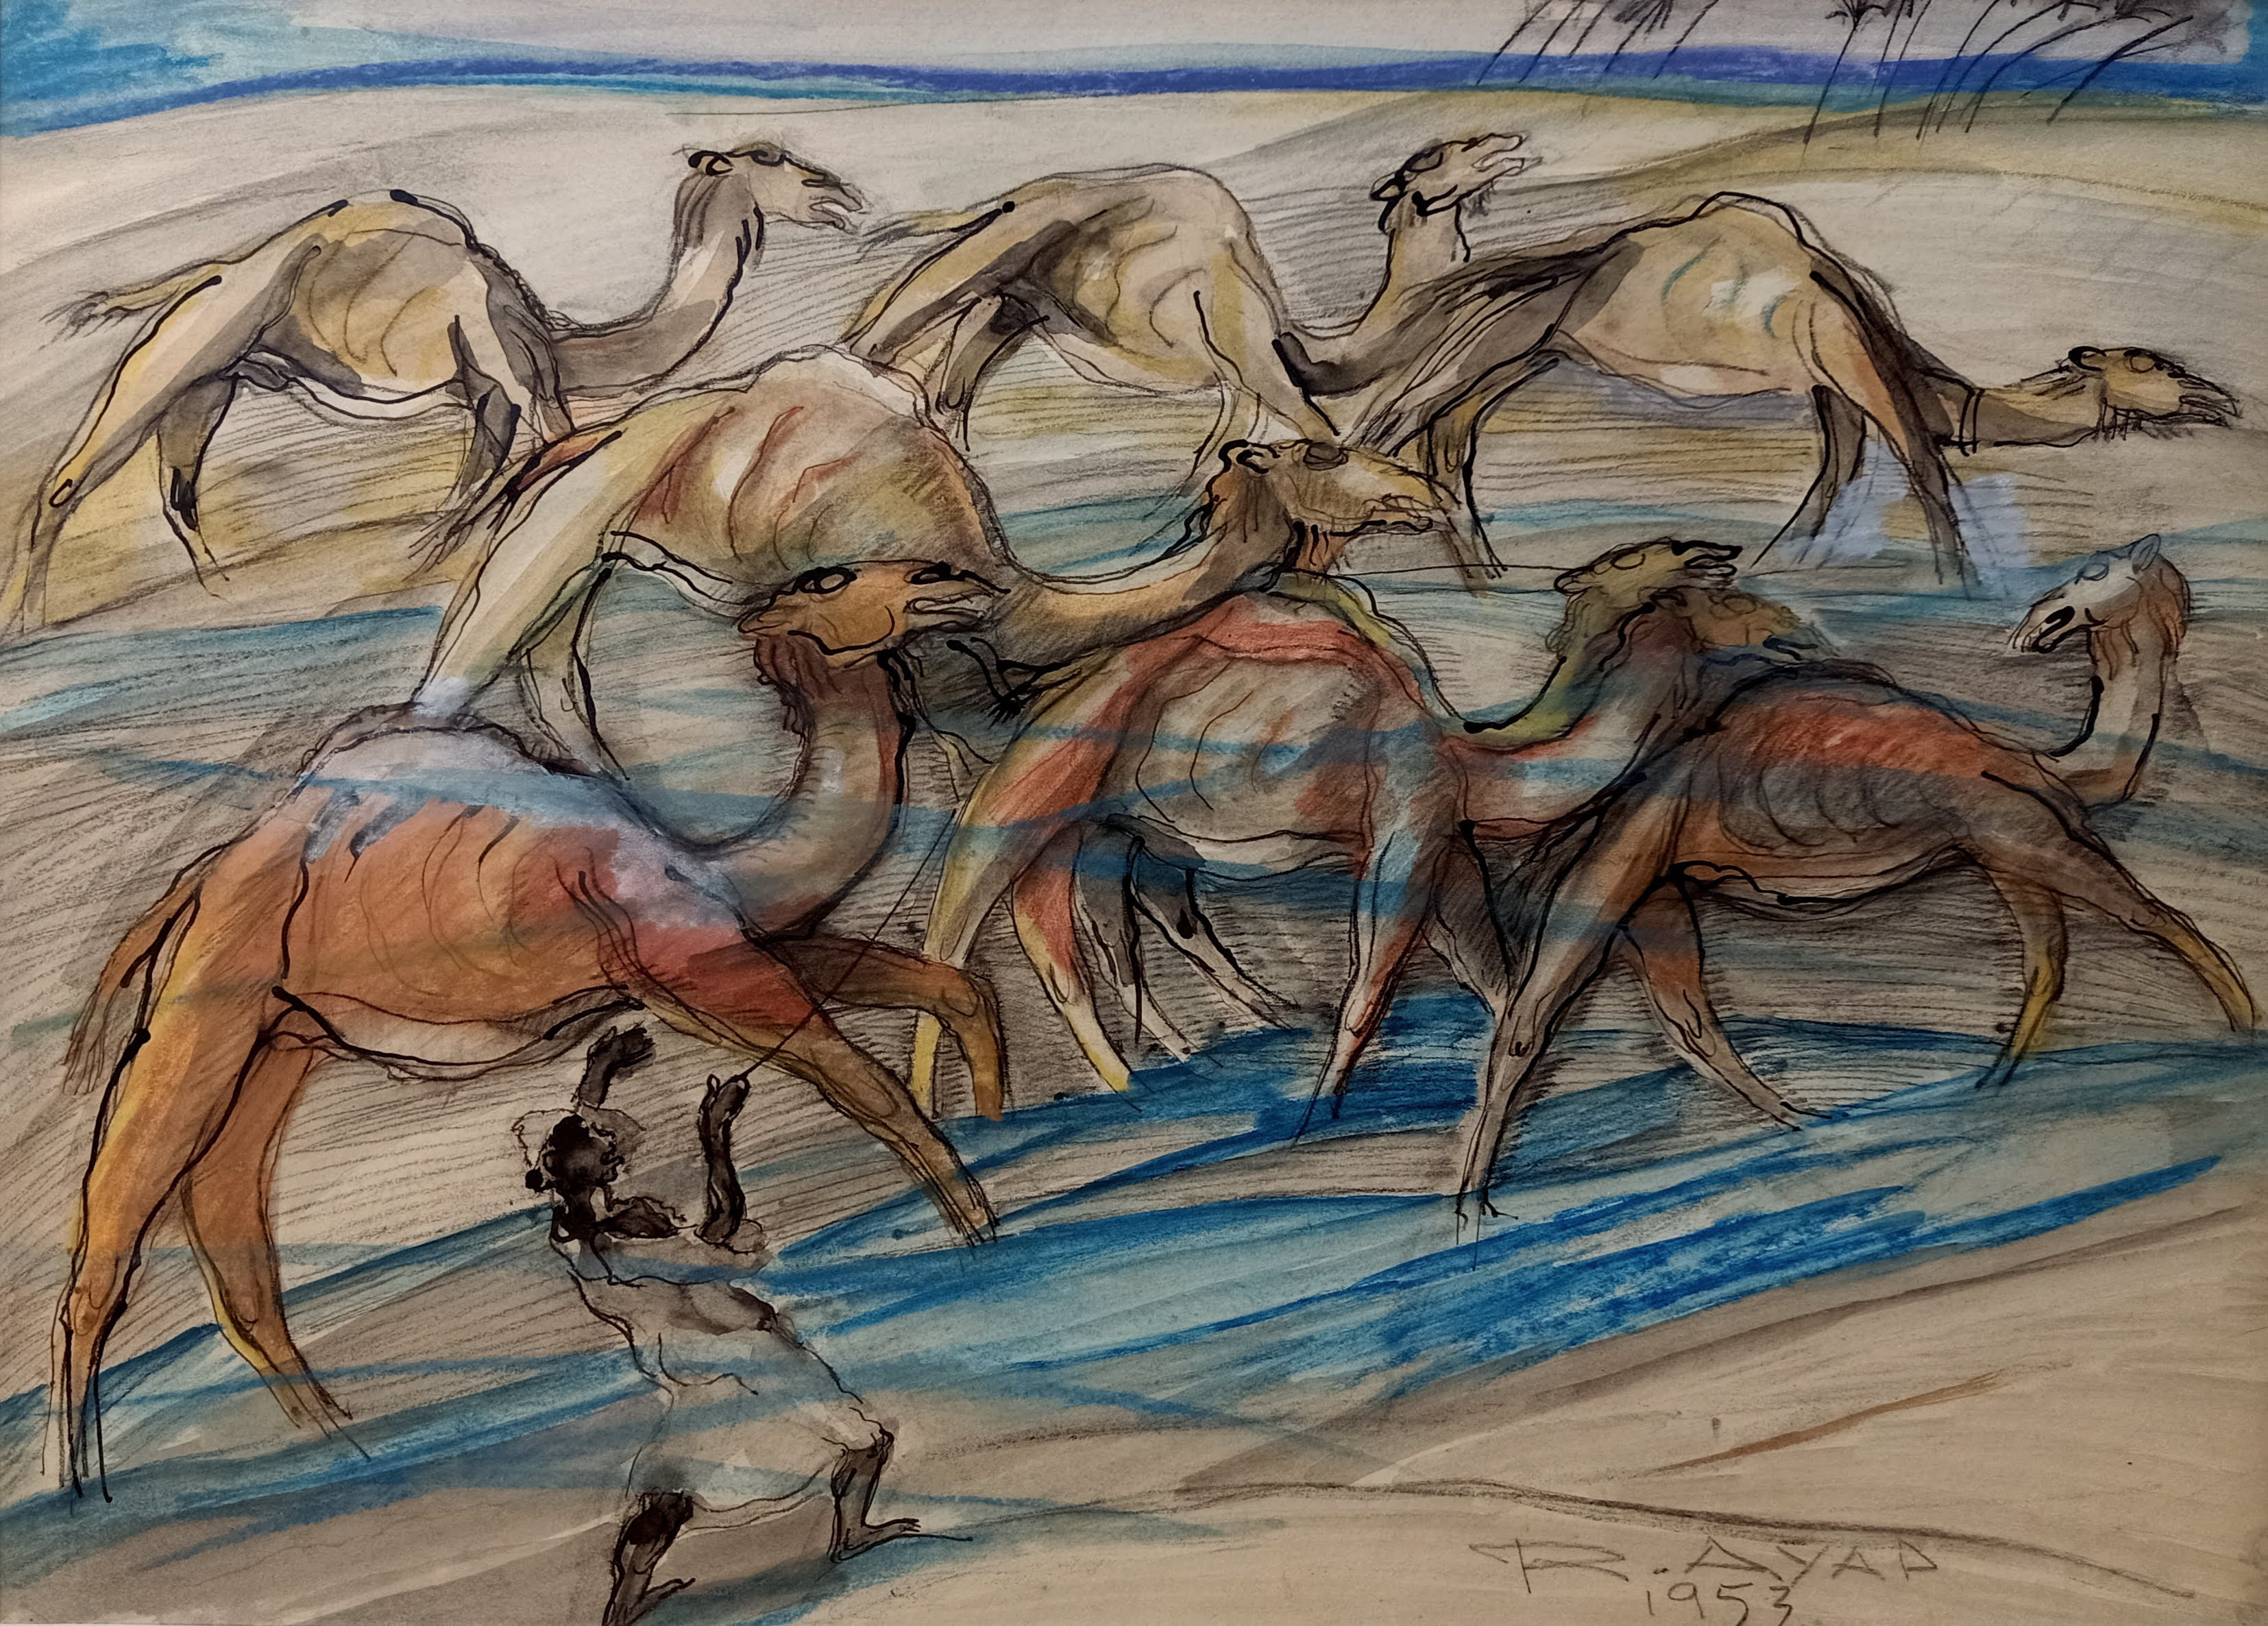 Ragheb Ayad, Camels, 1953. 47 x 65 cm Mixed media on paper Signed and dated bottom right